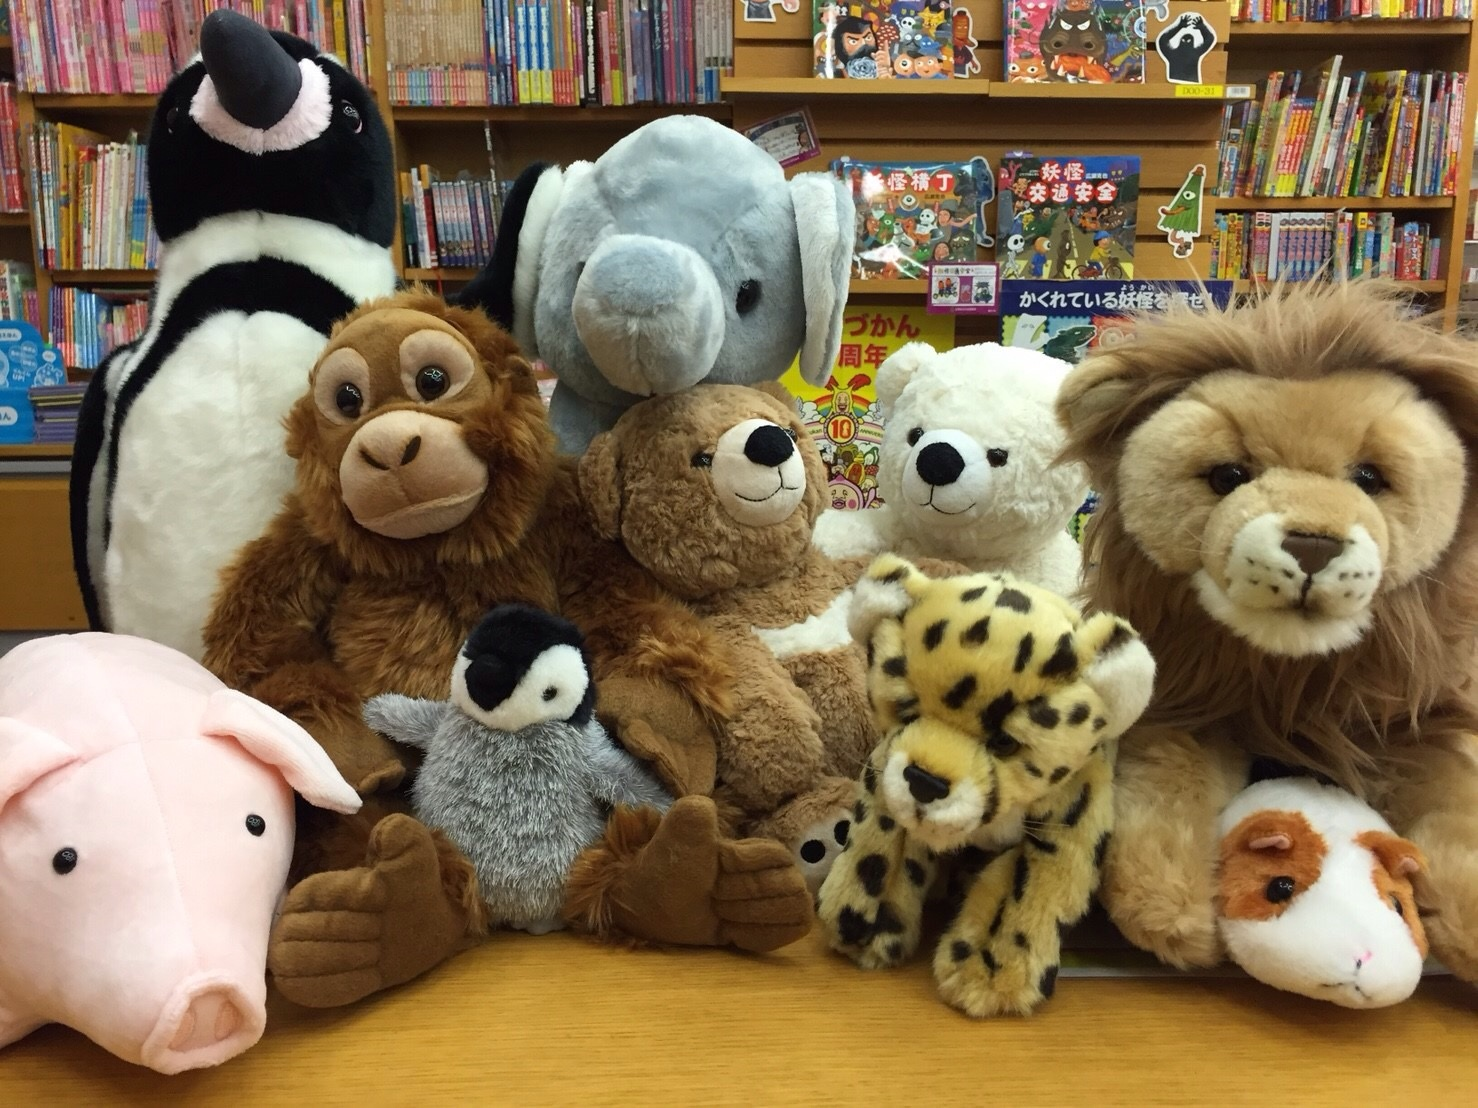 Plush Stuffed Animal Toys : Sleepovers with stuffed animals help children learn to read